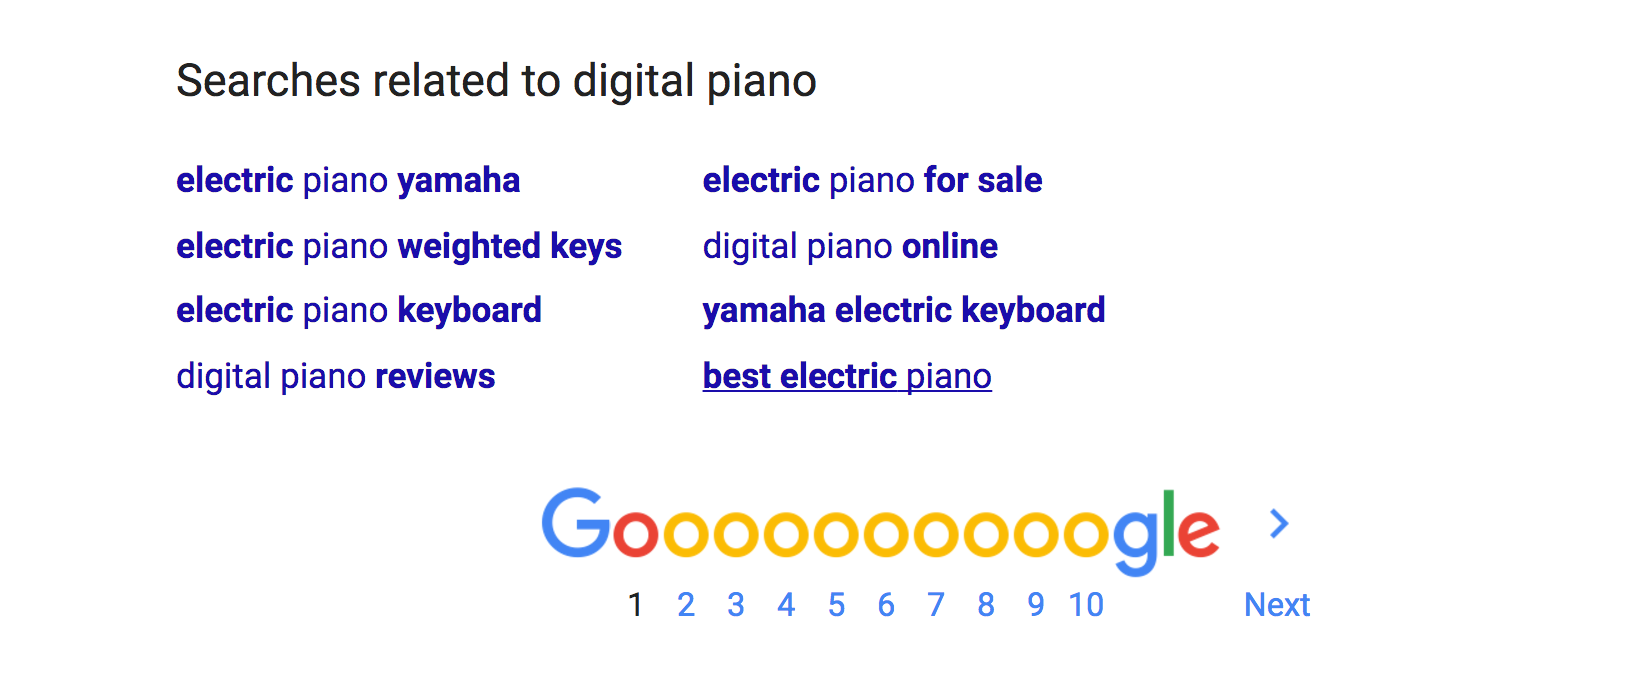 Google keywords search related